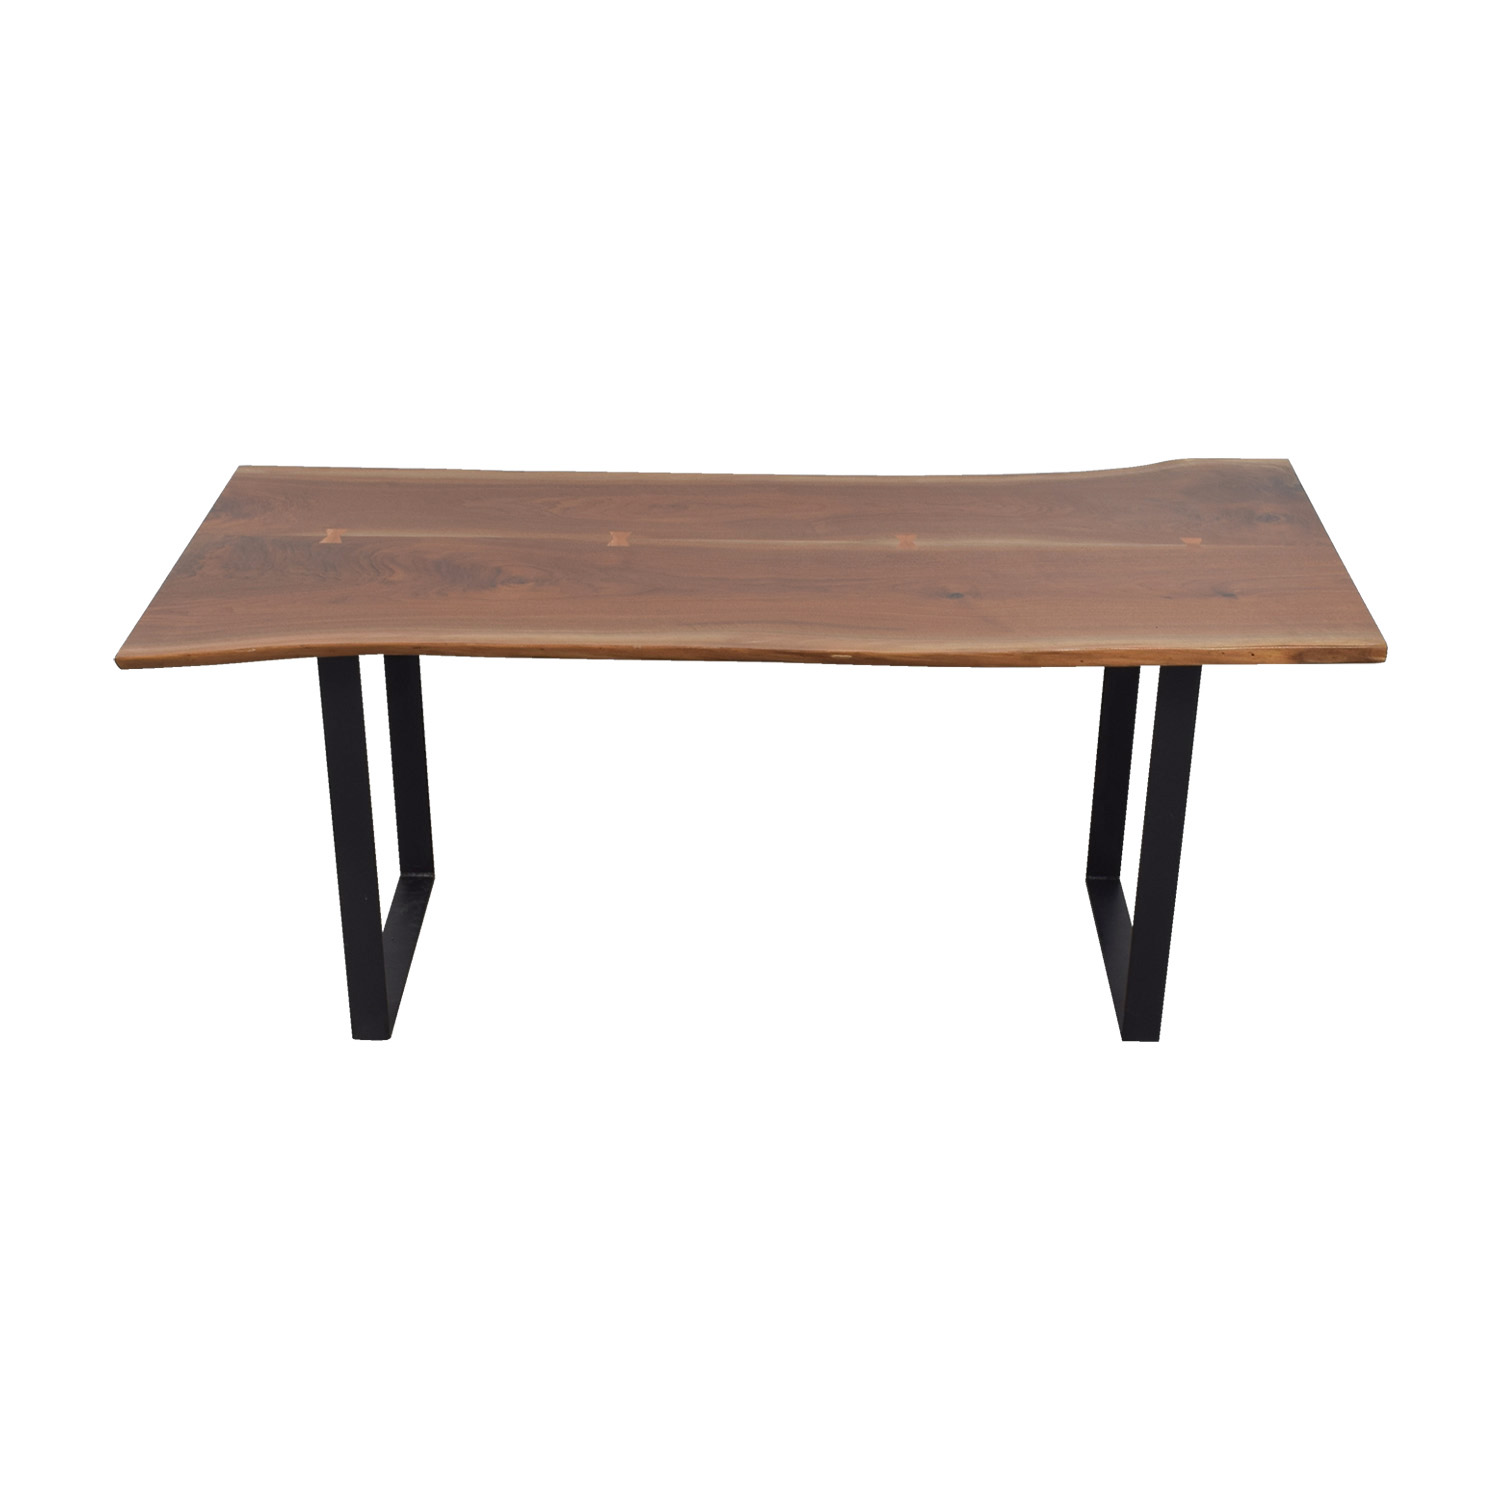 Room & Board Room & Board Chilton Walnut Dining Table dimensions